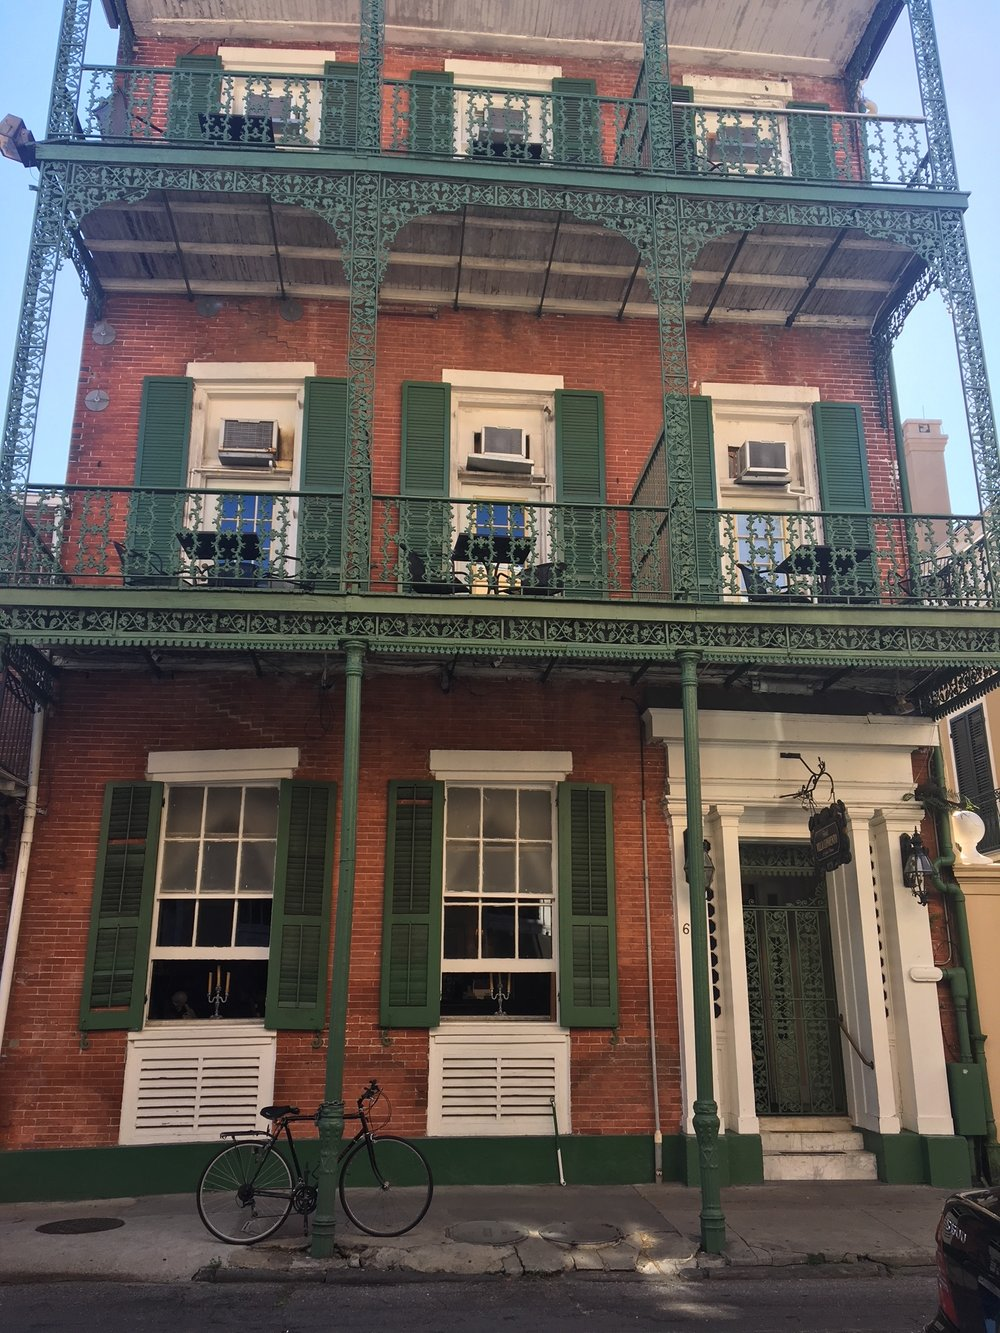 Work trip to New Orleans... I love that city